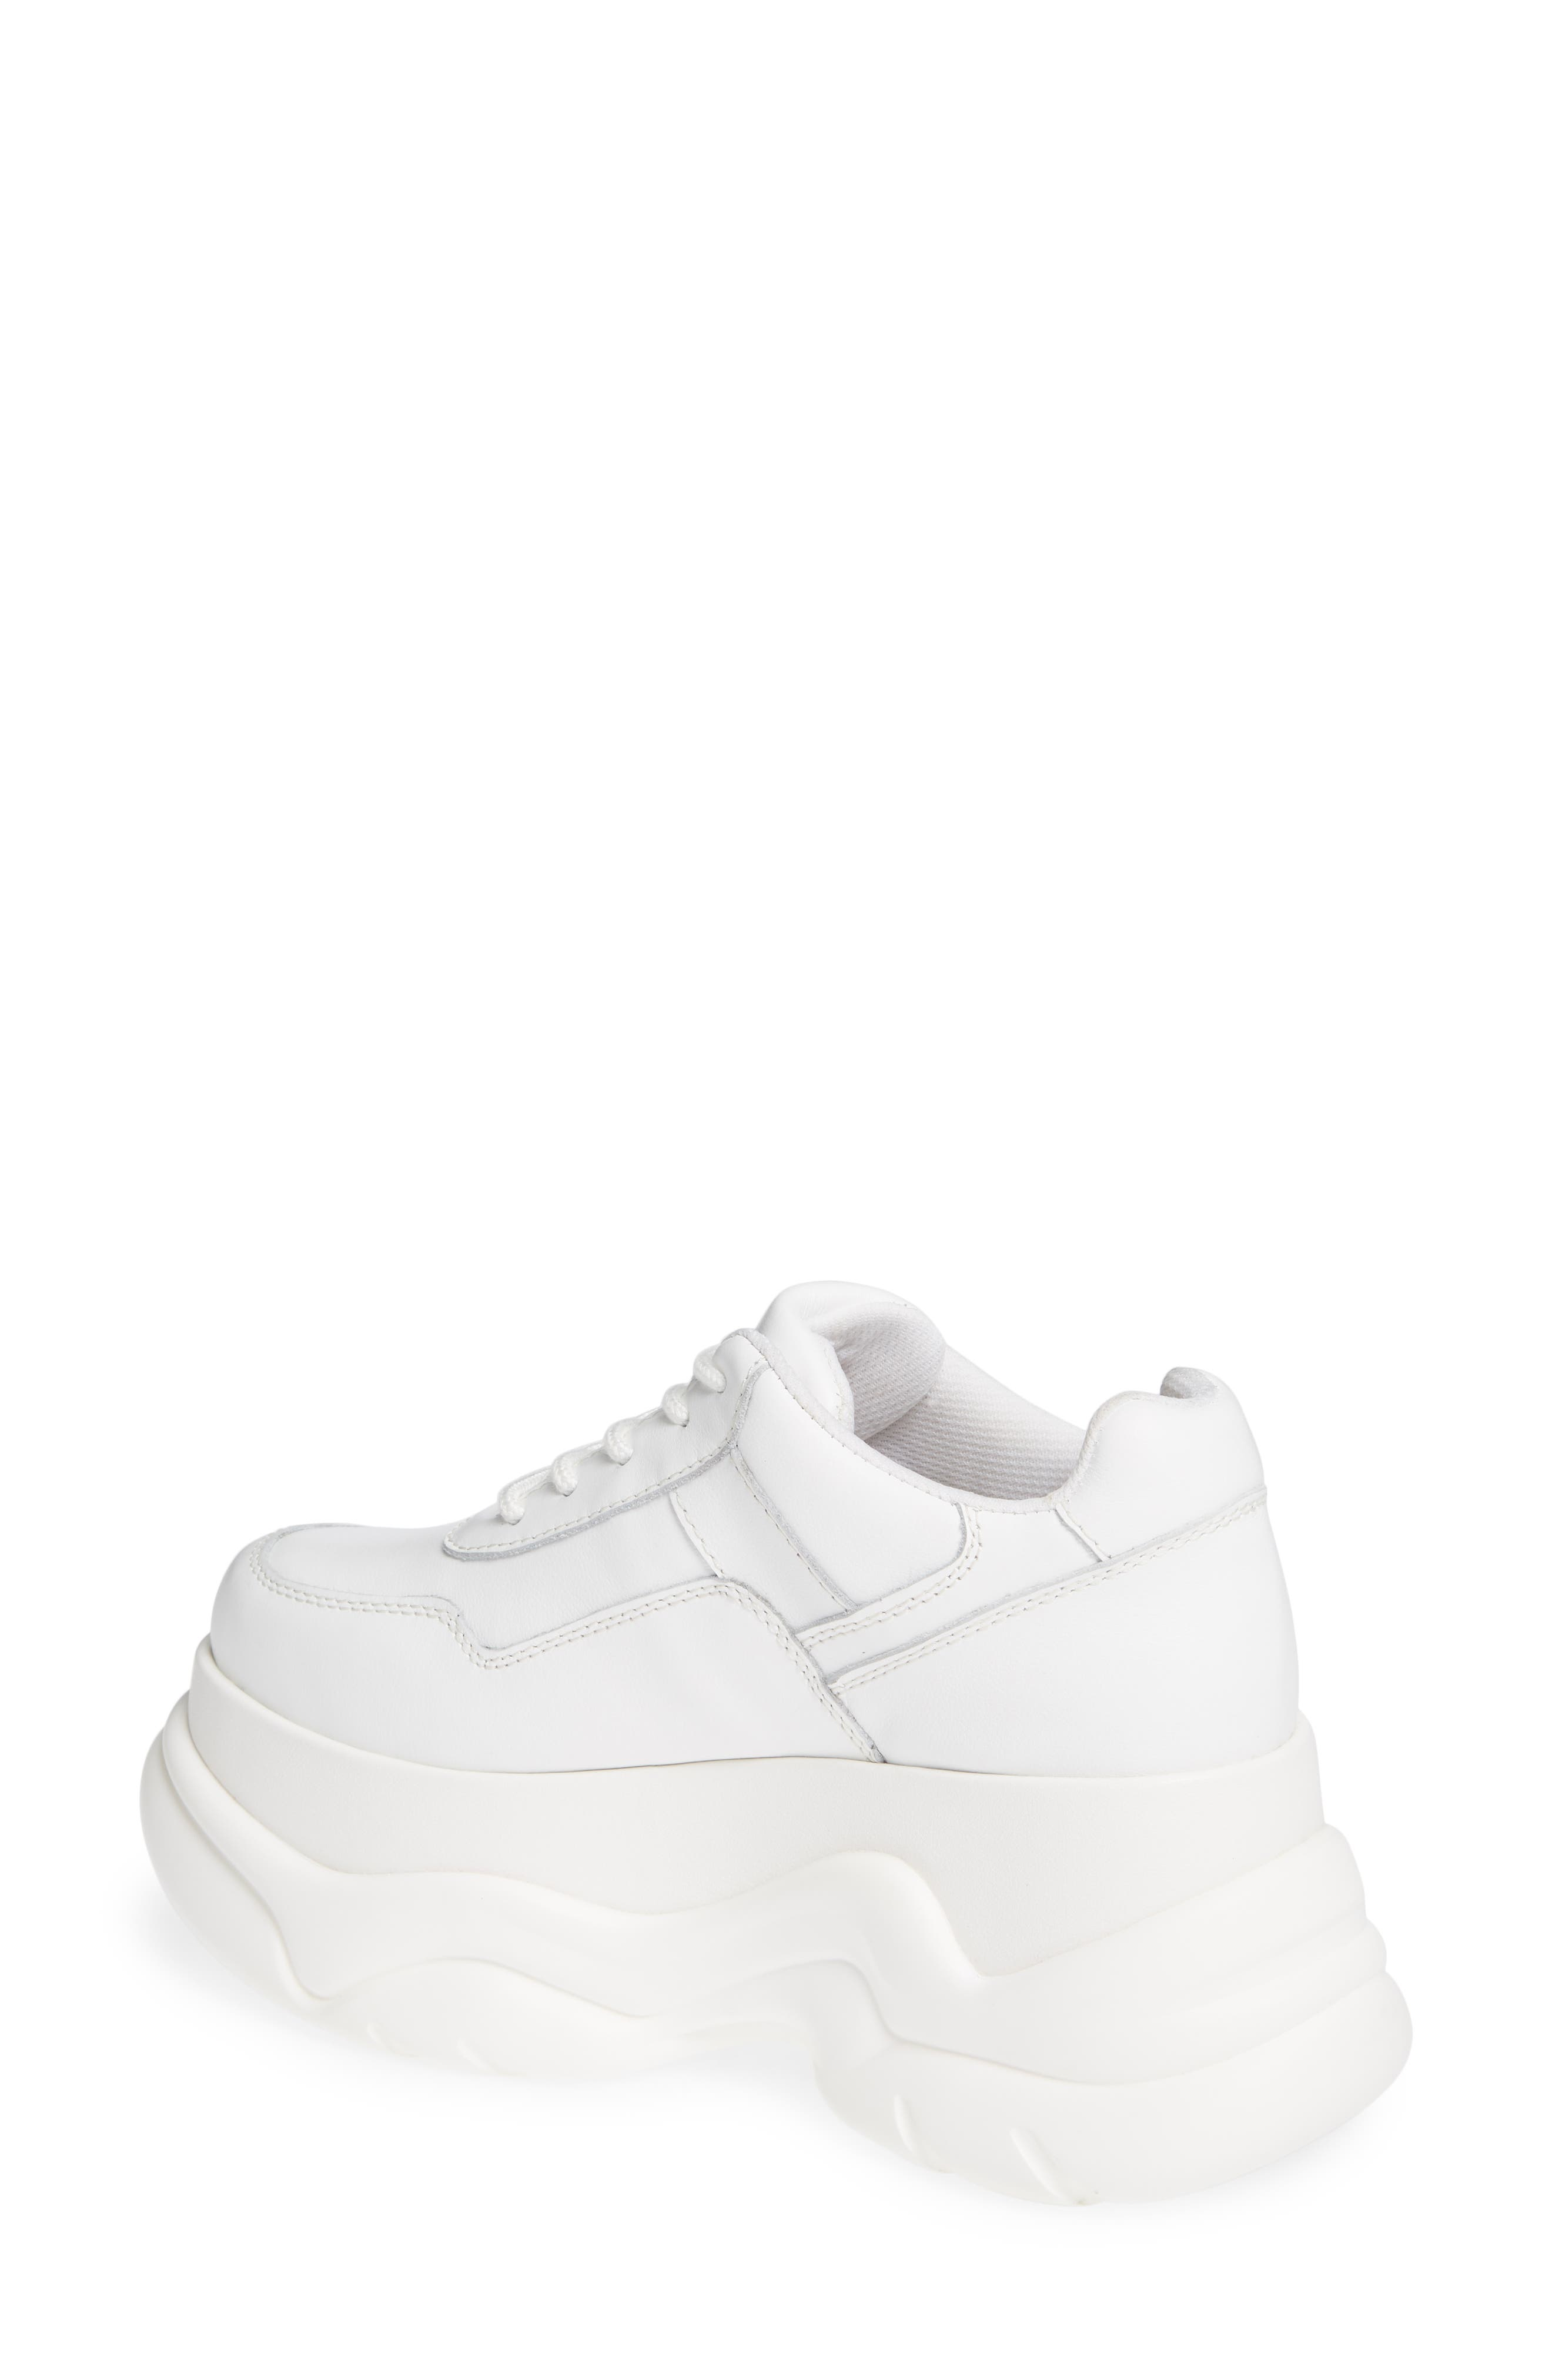 Most Def Wedge Sneaker,                             Alternate thumbnail 2, color,                             WHITE/ WHITE LEATHER